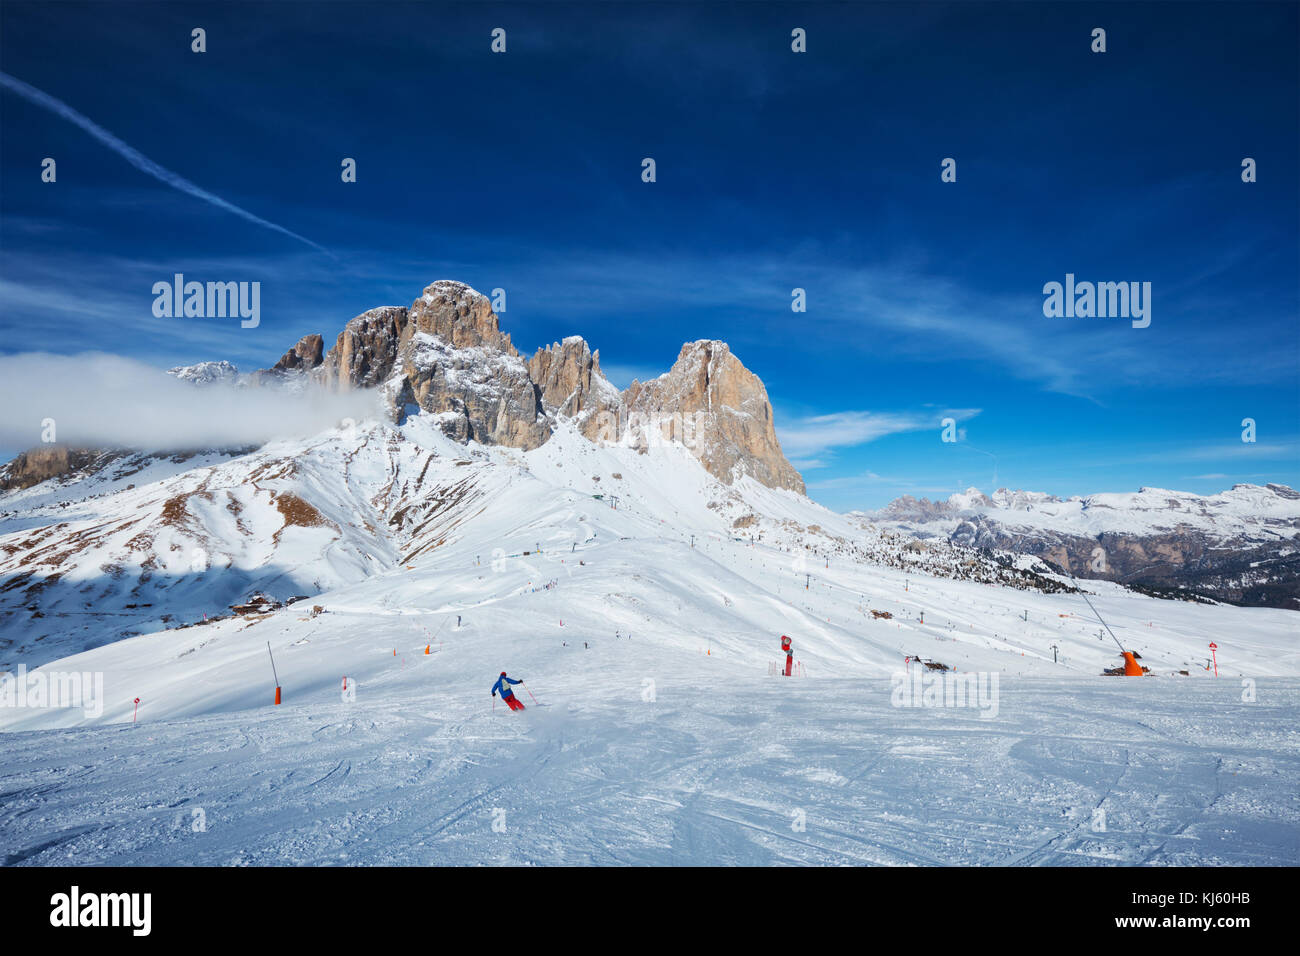 View of a ski resort piste with people skiing in Dolomites in Italy - Stock Image